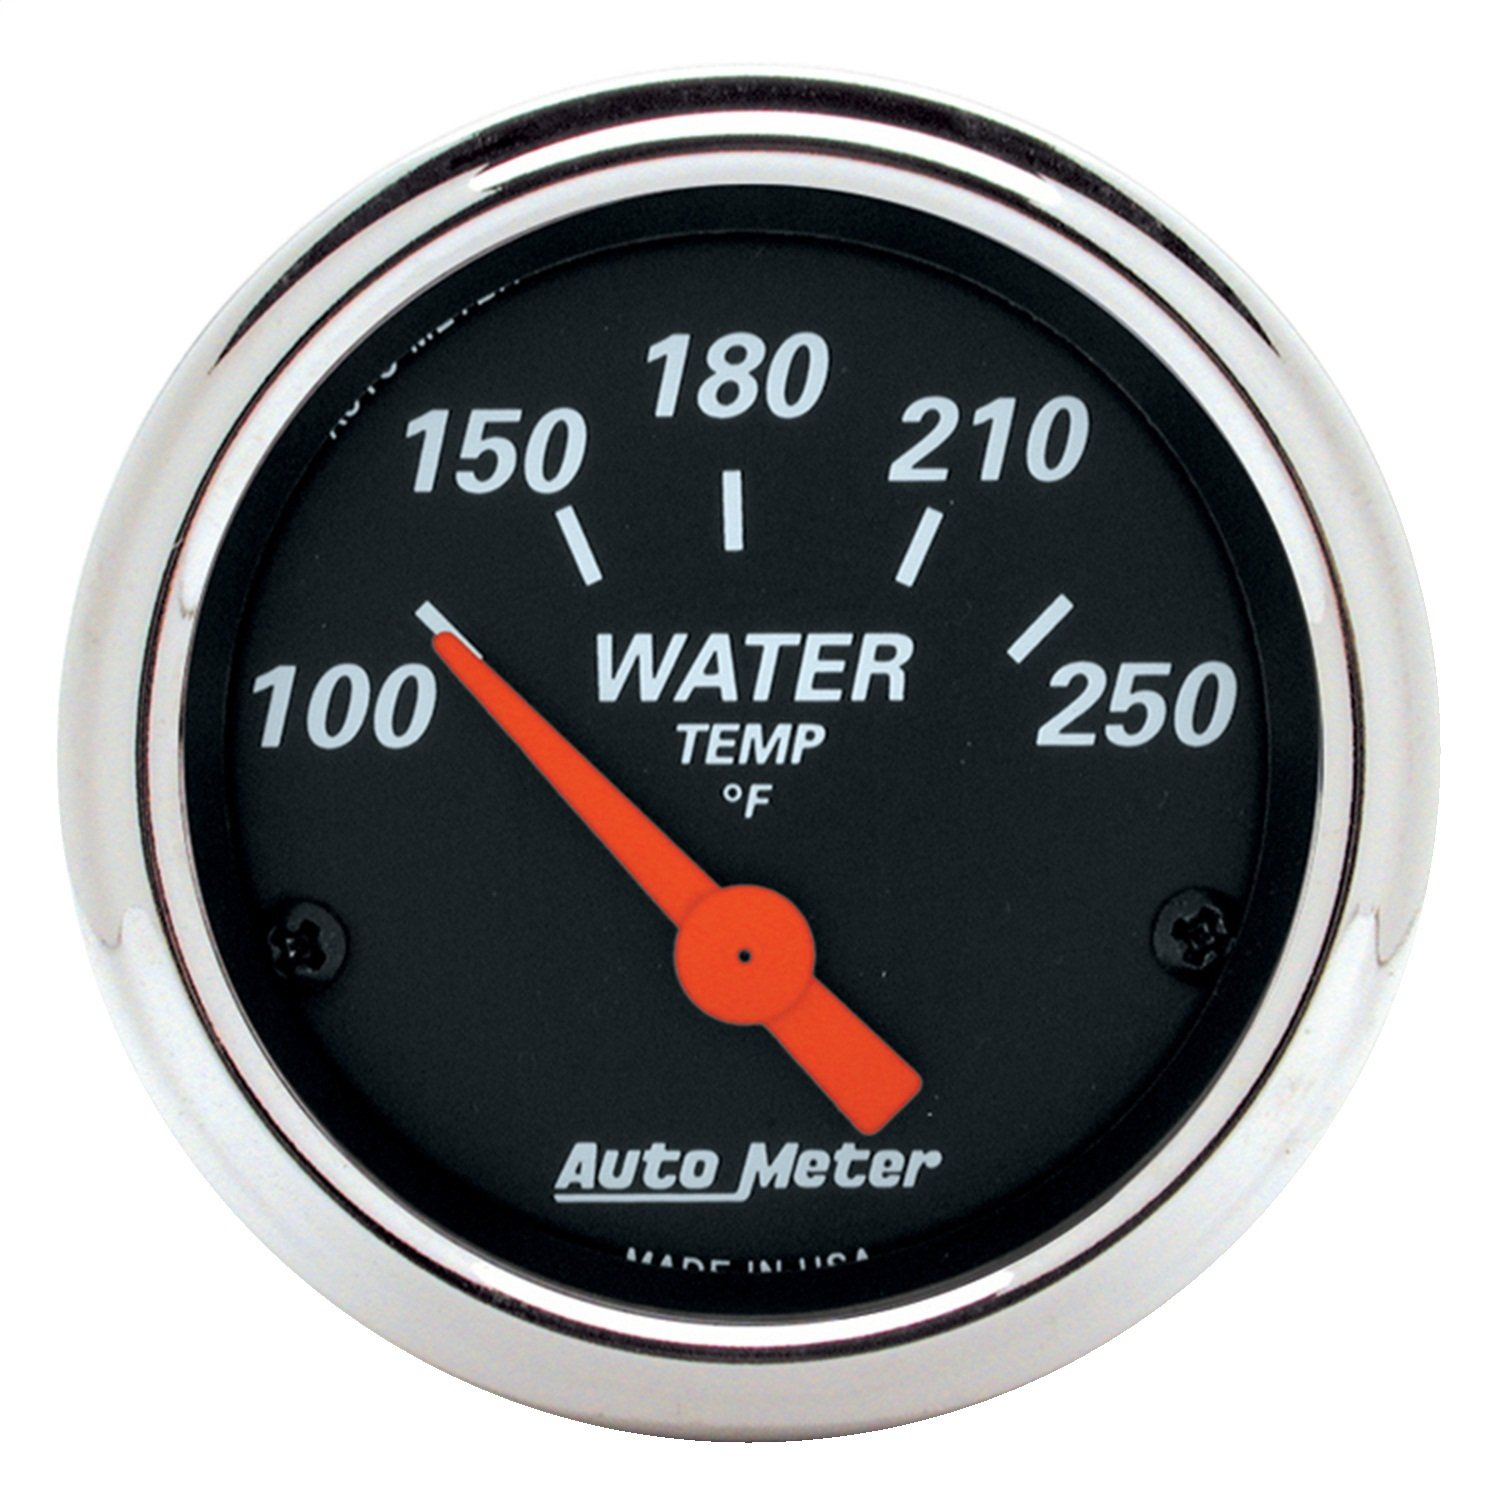 Auto Meter 1436 Designer Black Water Temperature Gauge by Auto Meter